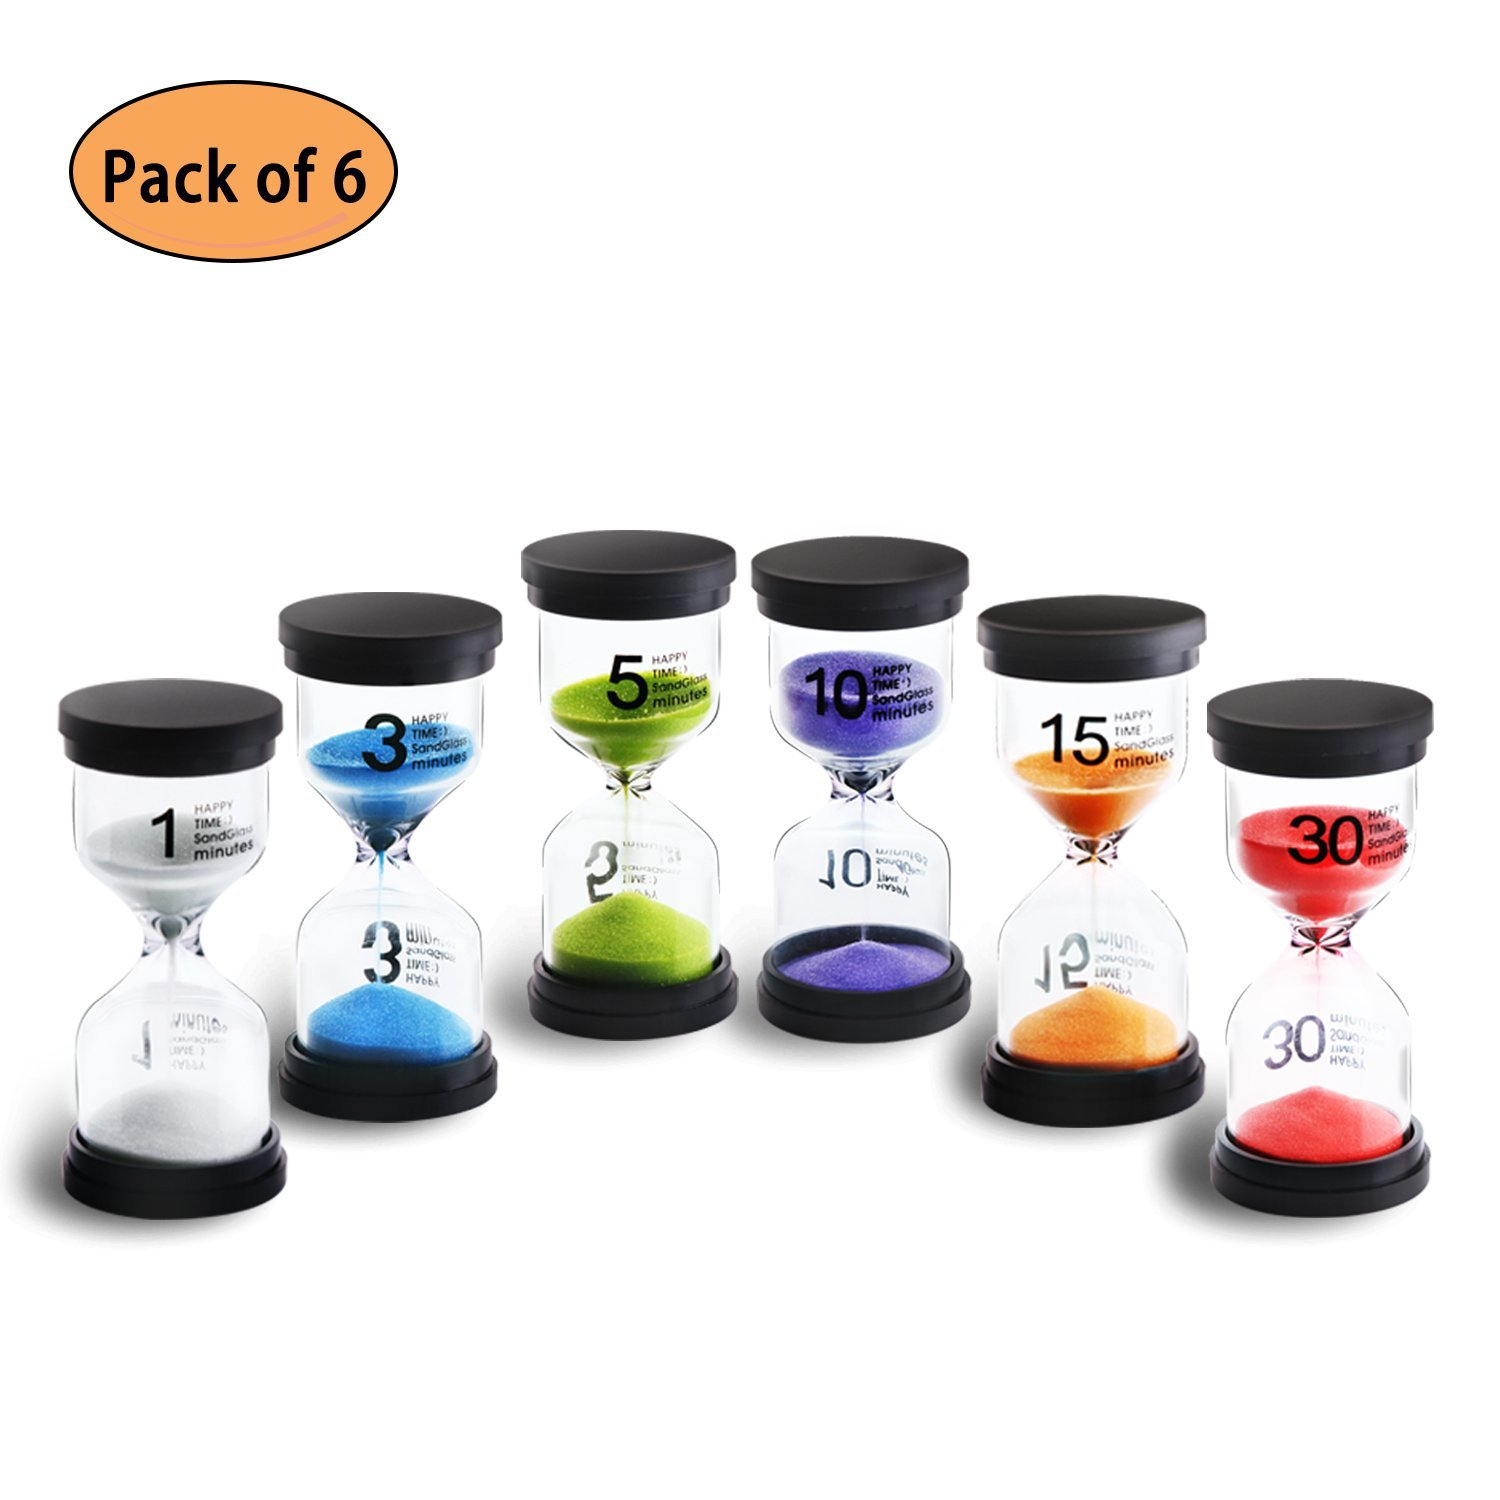 Sand Timer KeeQii 6 Colors Hourglass Timer 1min / 3mins / 5mins / 10mins / 15mins /30mins Sandglass Timer for Kids, Classroom, Kitchen, Games, Brushing Timer, Home Office Decoration Timers (6pcs) Goldluxury